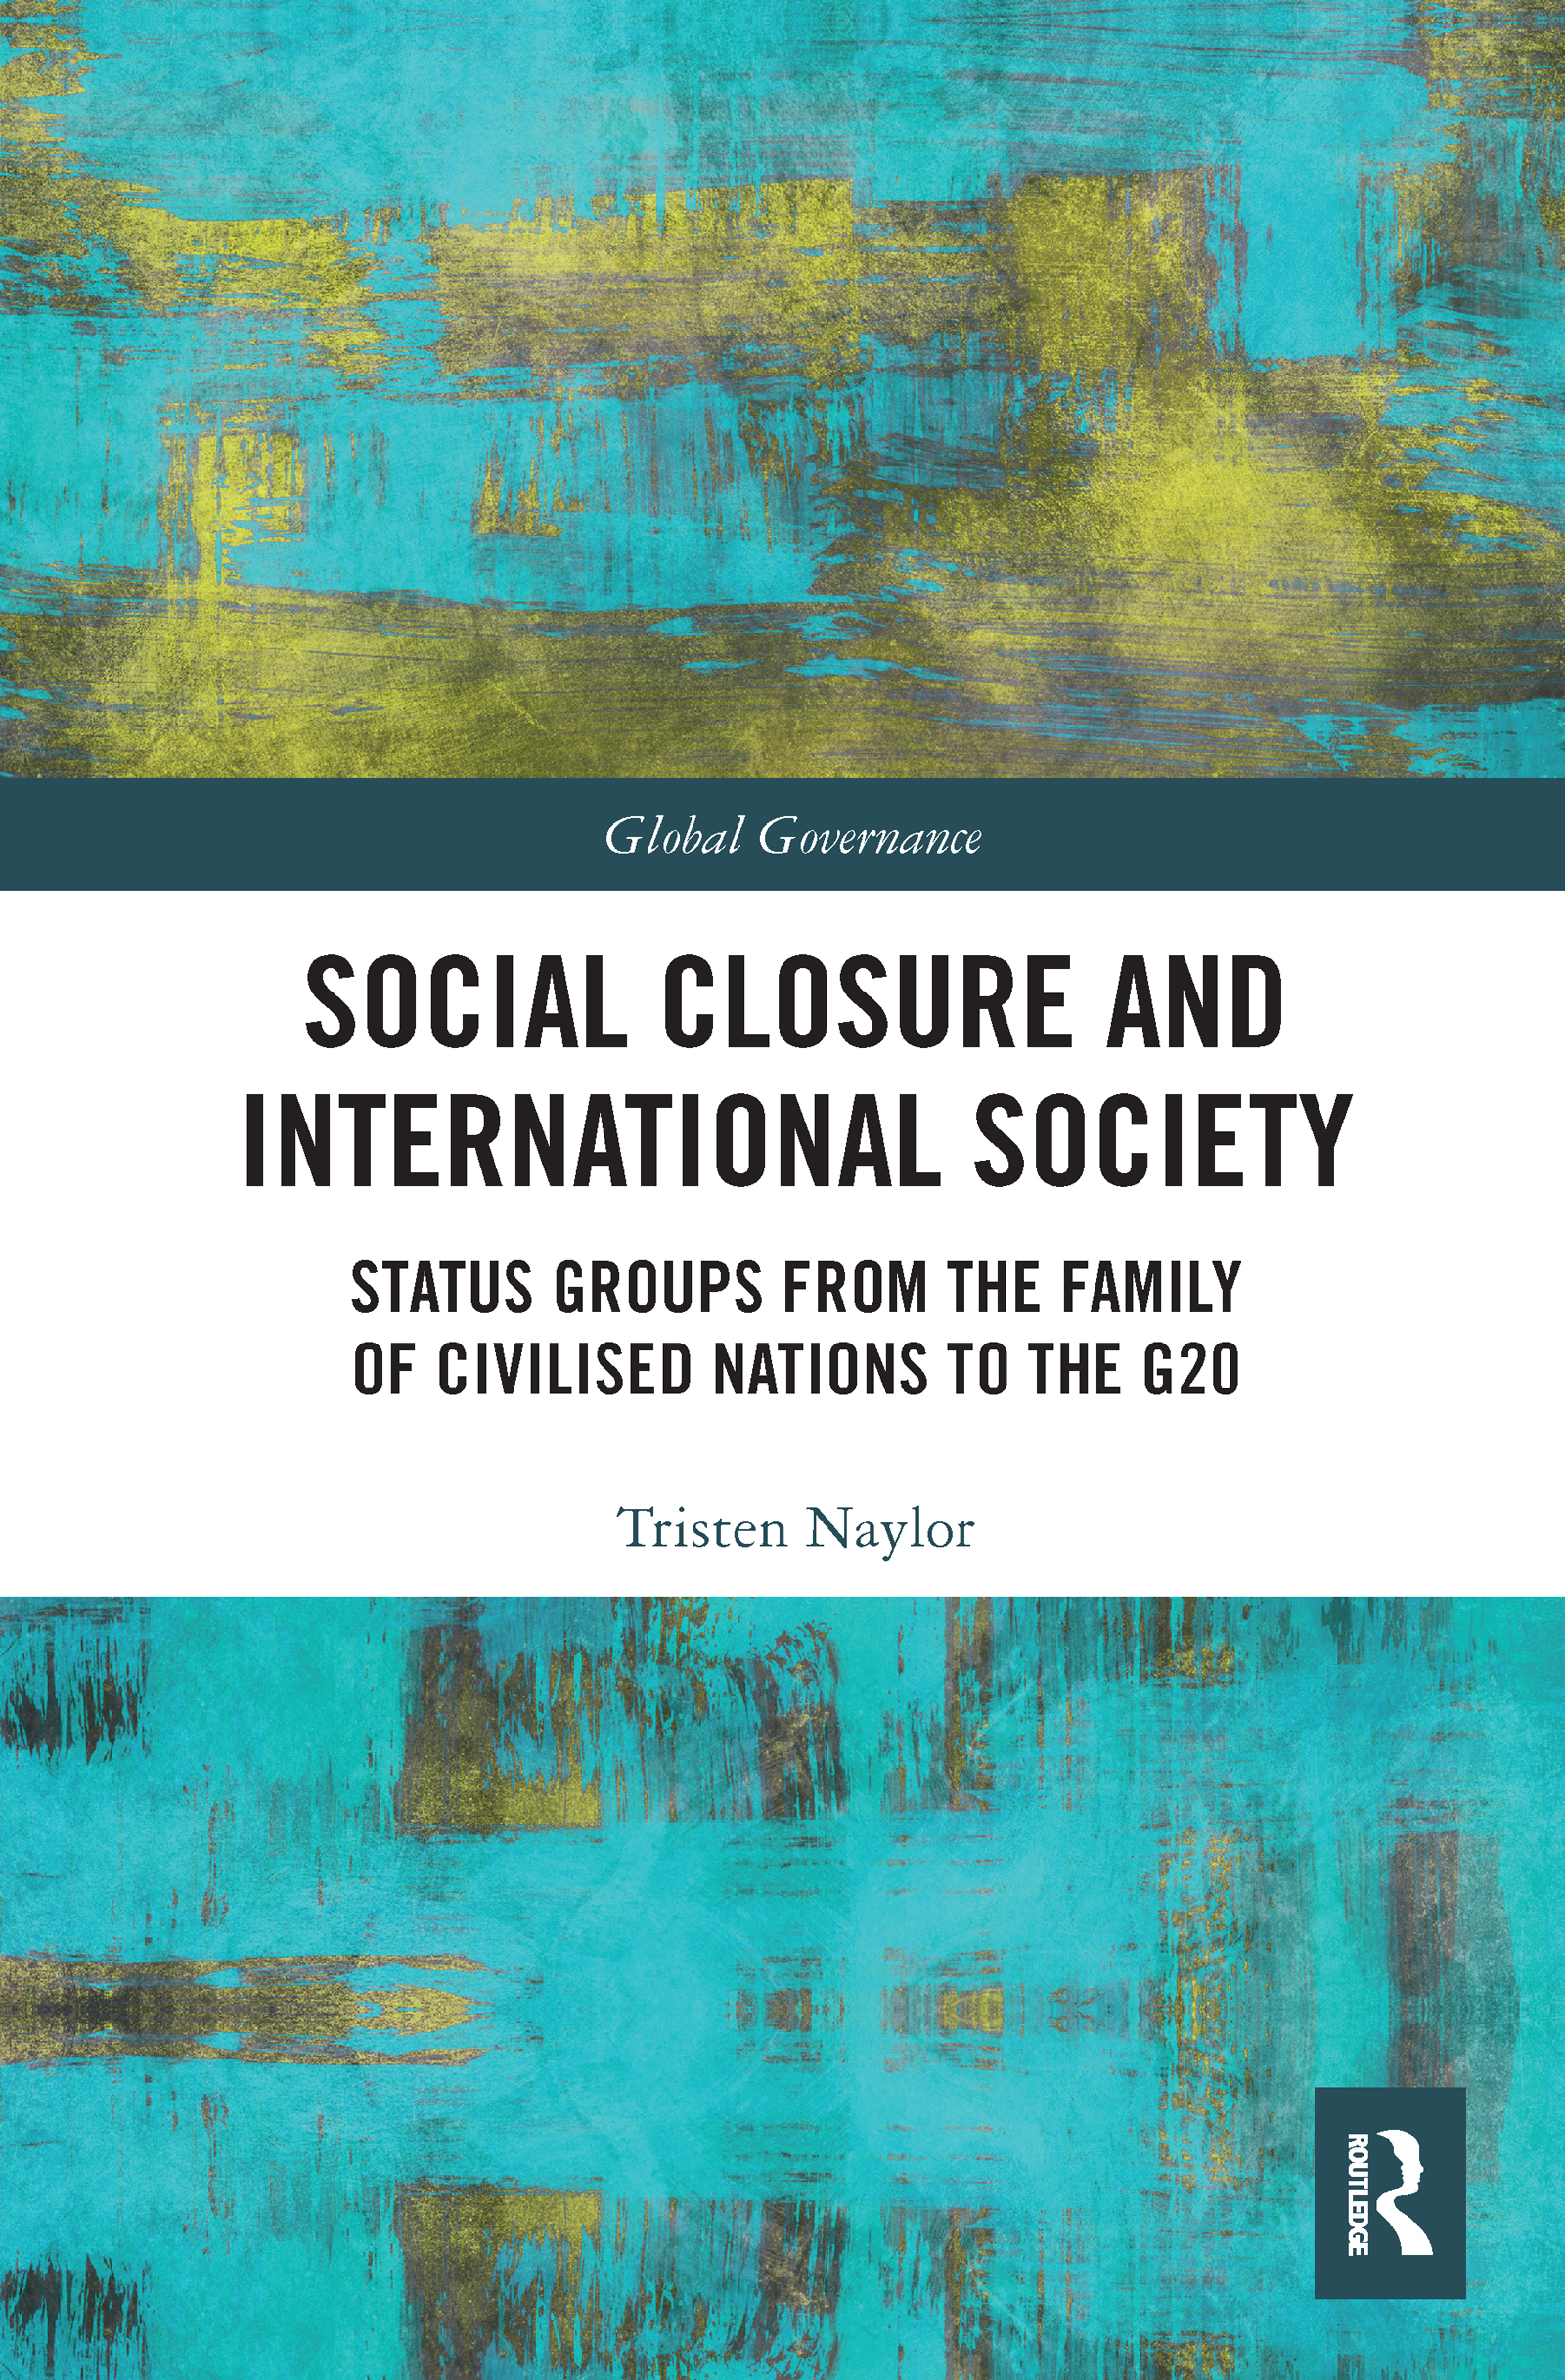 Social Closure and International Society